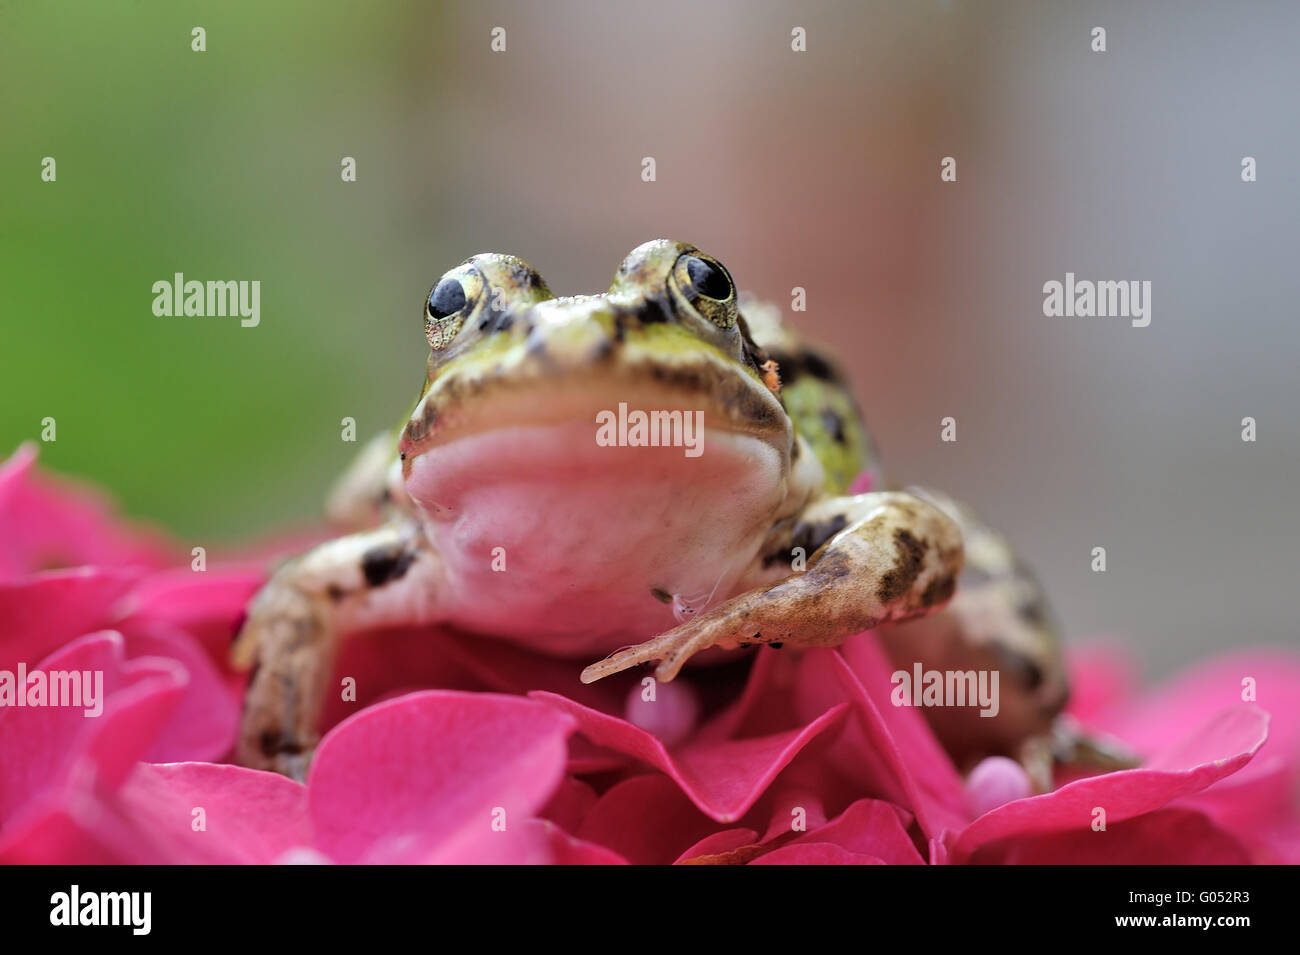 grass frog - Stock Image